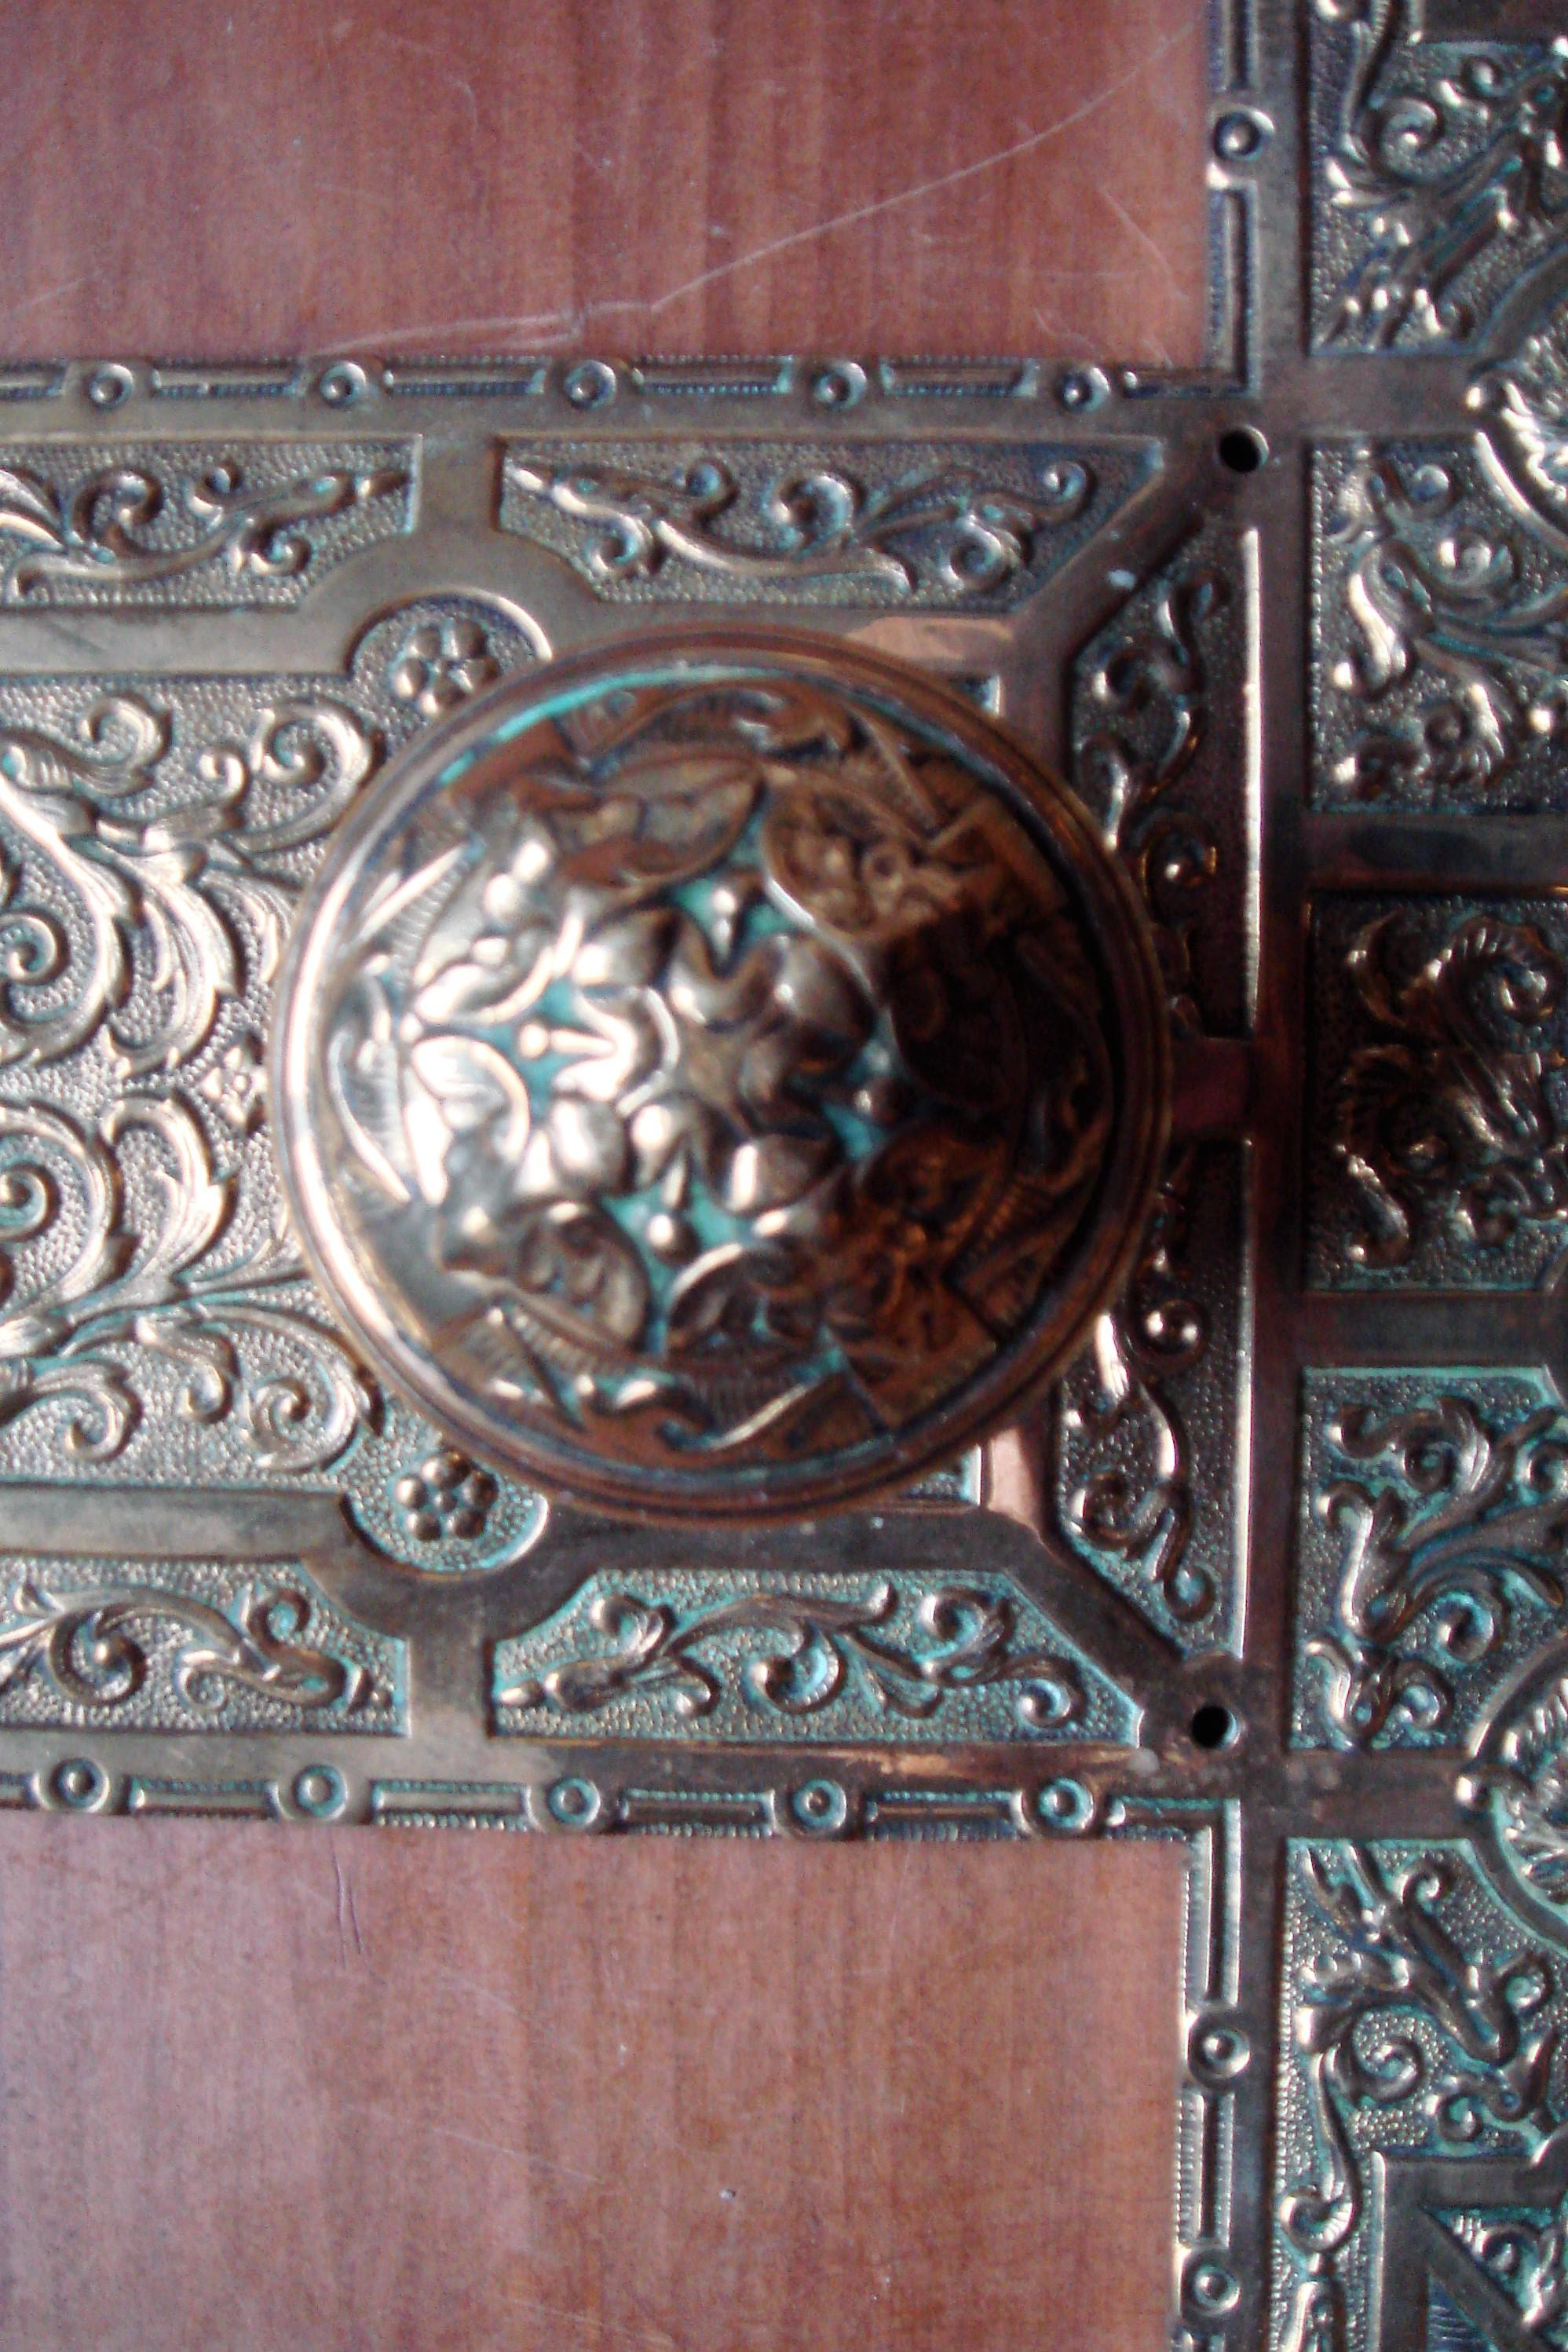 Genuine Edwardian Door Plate & Knob of 1911 with Lion Mask Detail